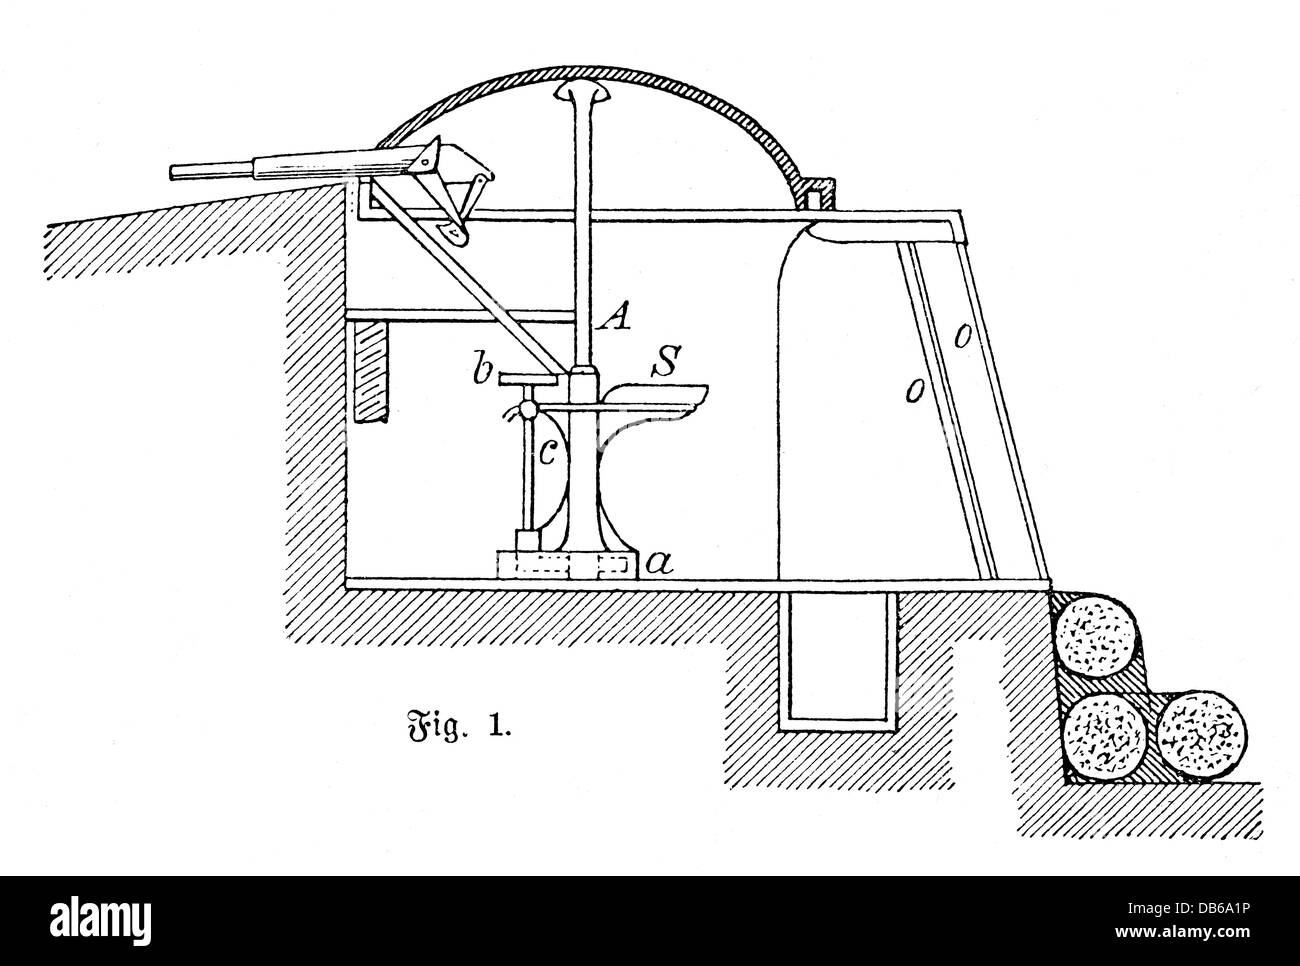 military, machinery of war, cross section of an armoured turret with rapid fire gun, installed in a trench, wood - Stock Image